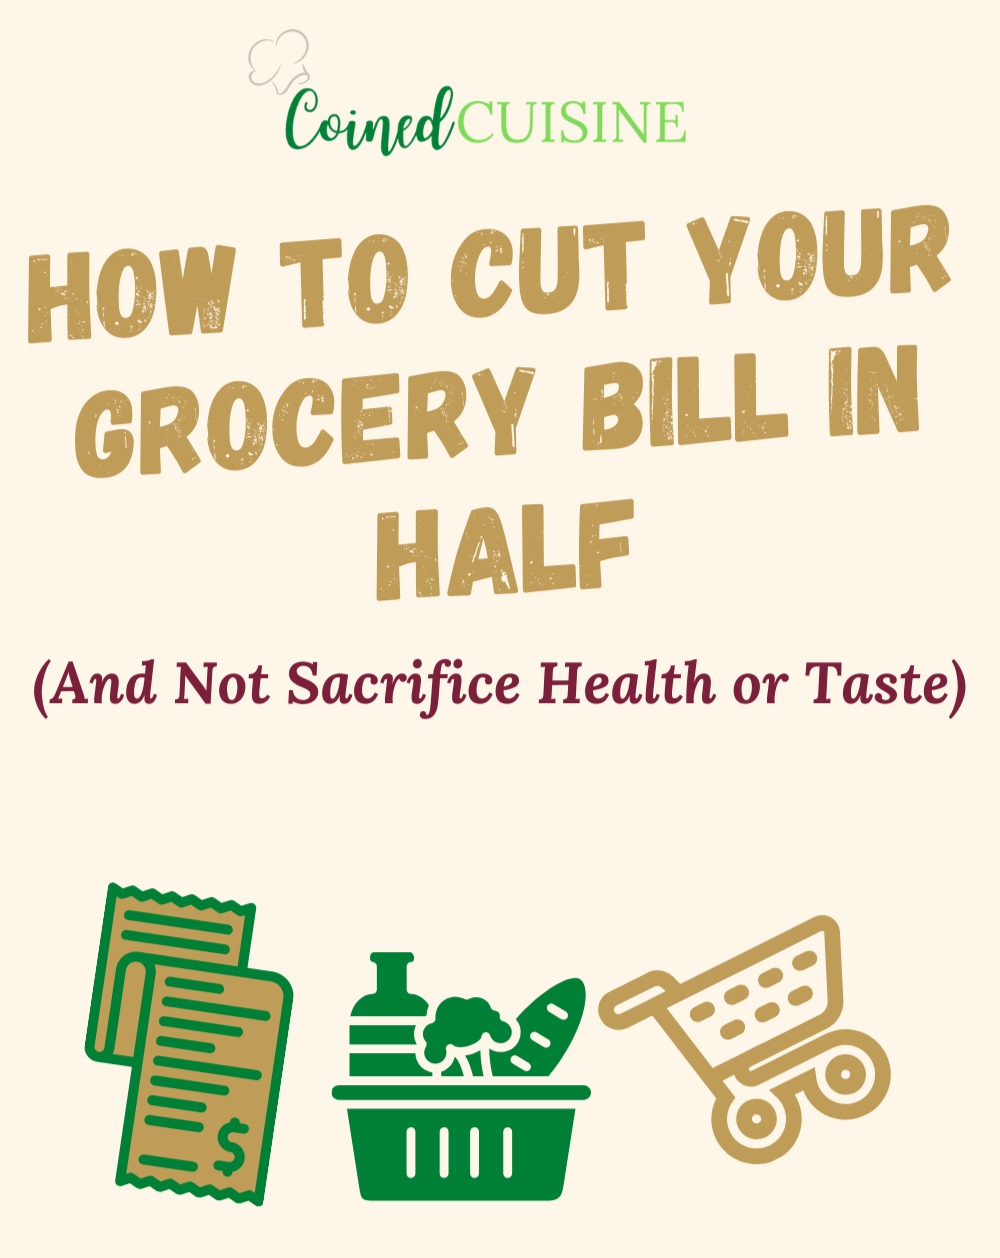 poster that says how to cut your grocery bill in half and be healthy with tasty meals